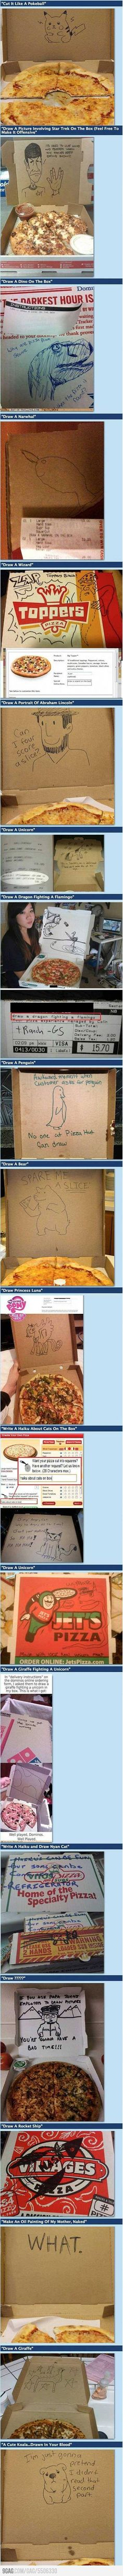 Pizza Box Drawing Requests. They did a good job too!